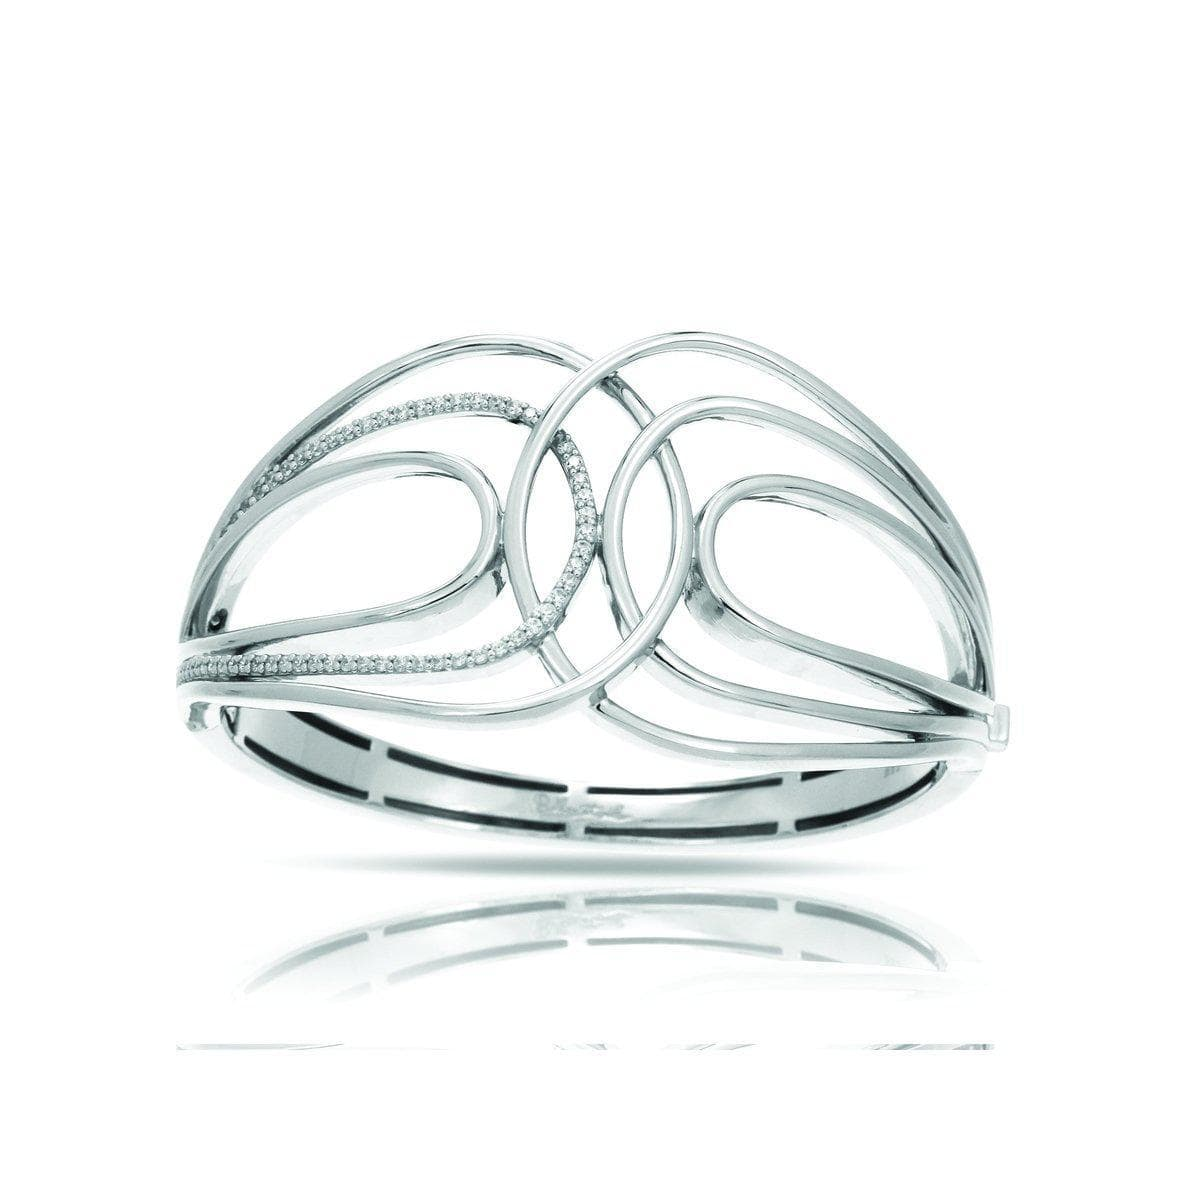 Onda Silver Bangle-Belle Etoile-Renee Taylor Gallery